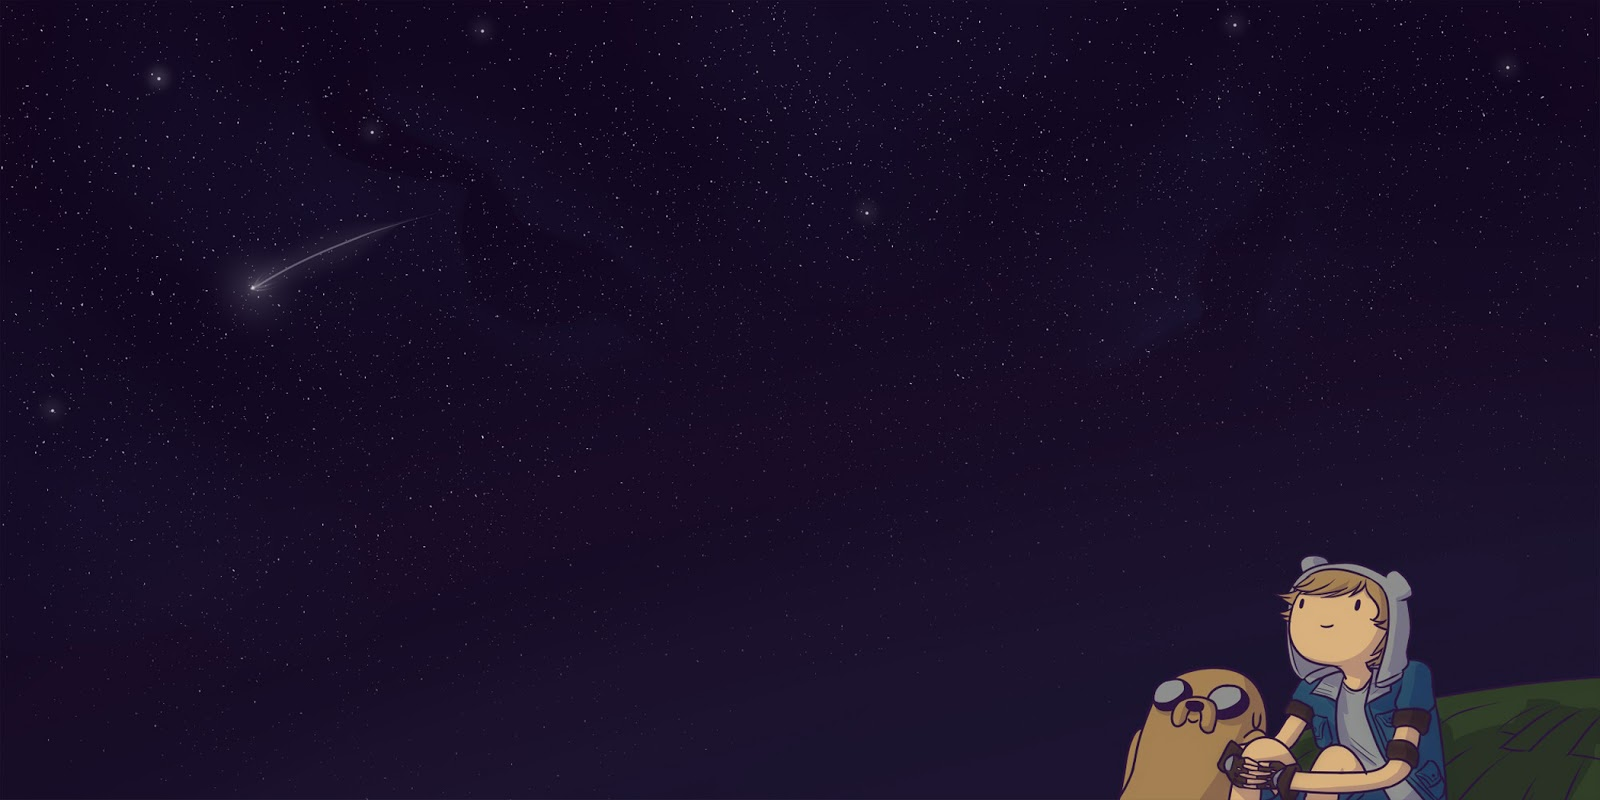 Adventure Time Cartoon Night Sky Shooting Stars Scenery HD Wallpaper 1600x800